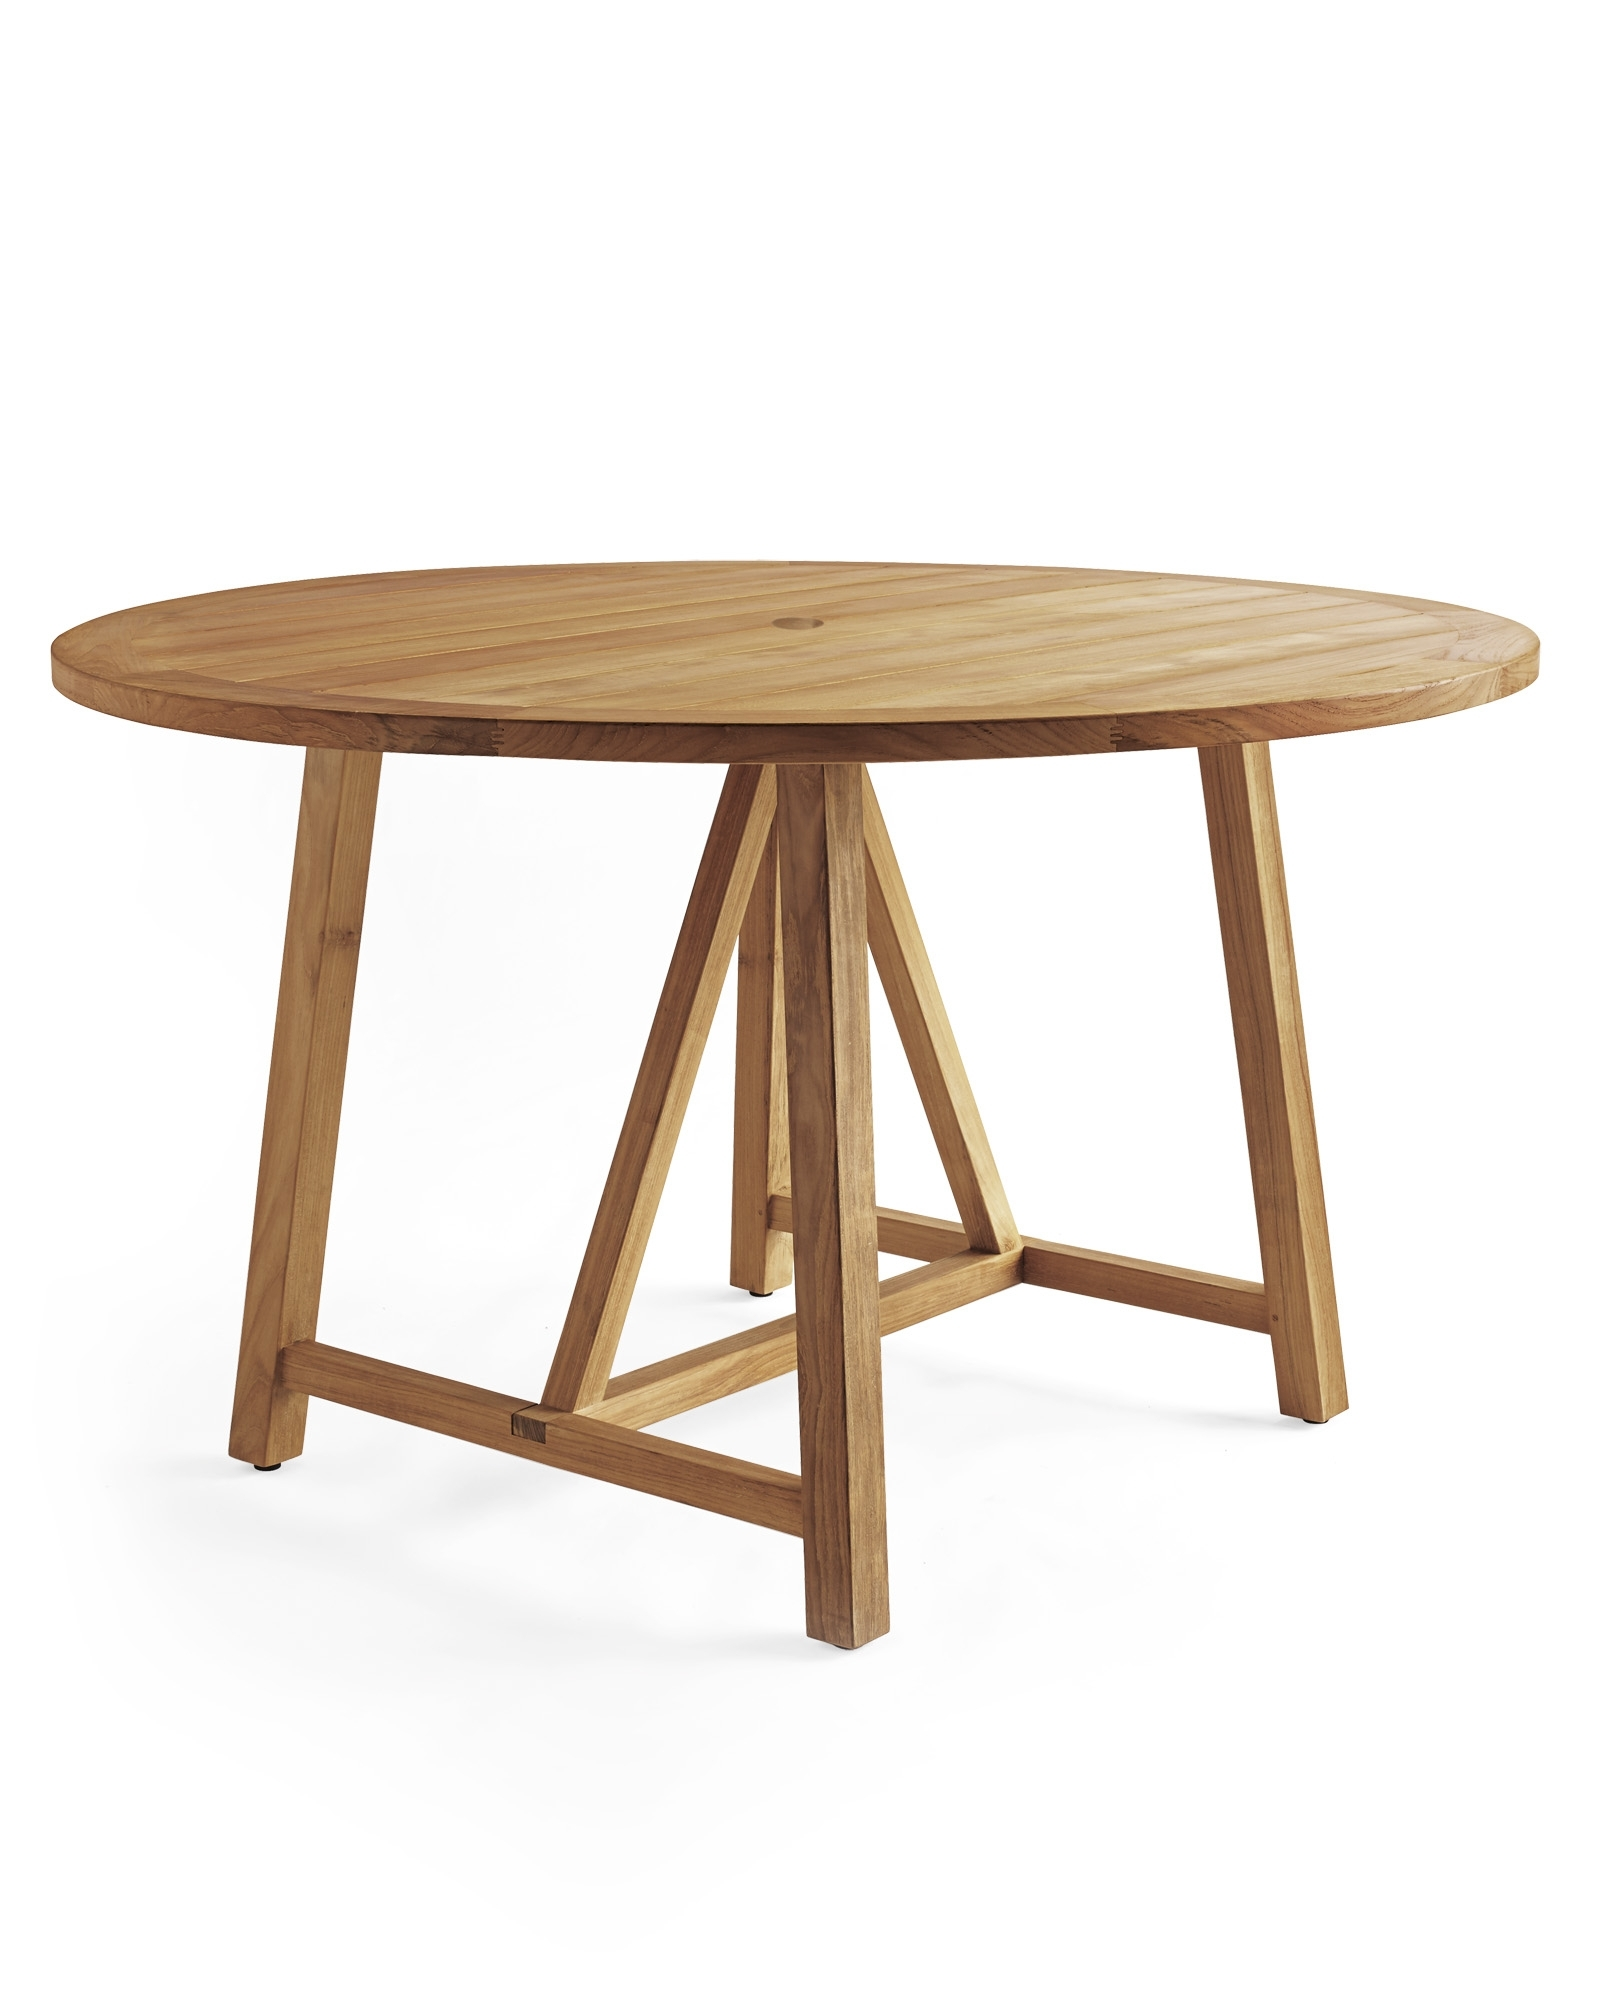 Round Teak Dining Tables Throughout Most Up To Date Crosby Teak Round Dining Table – Serena & Lily (View 18 of 25)